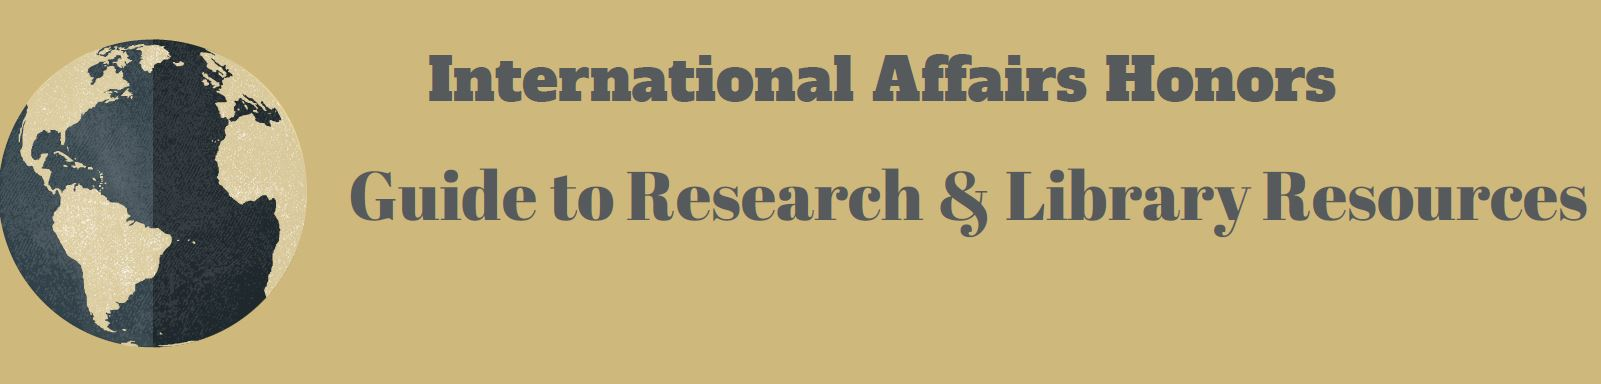 International Affairs Honors Guide to Research and Library Resources